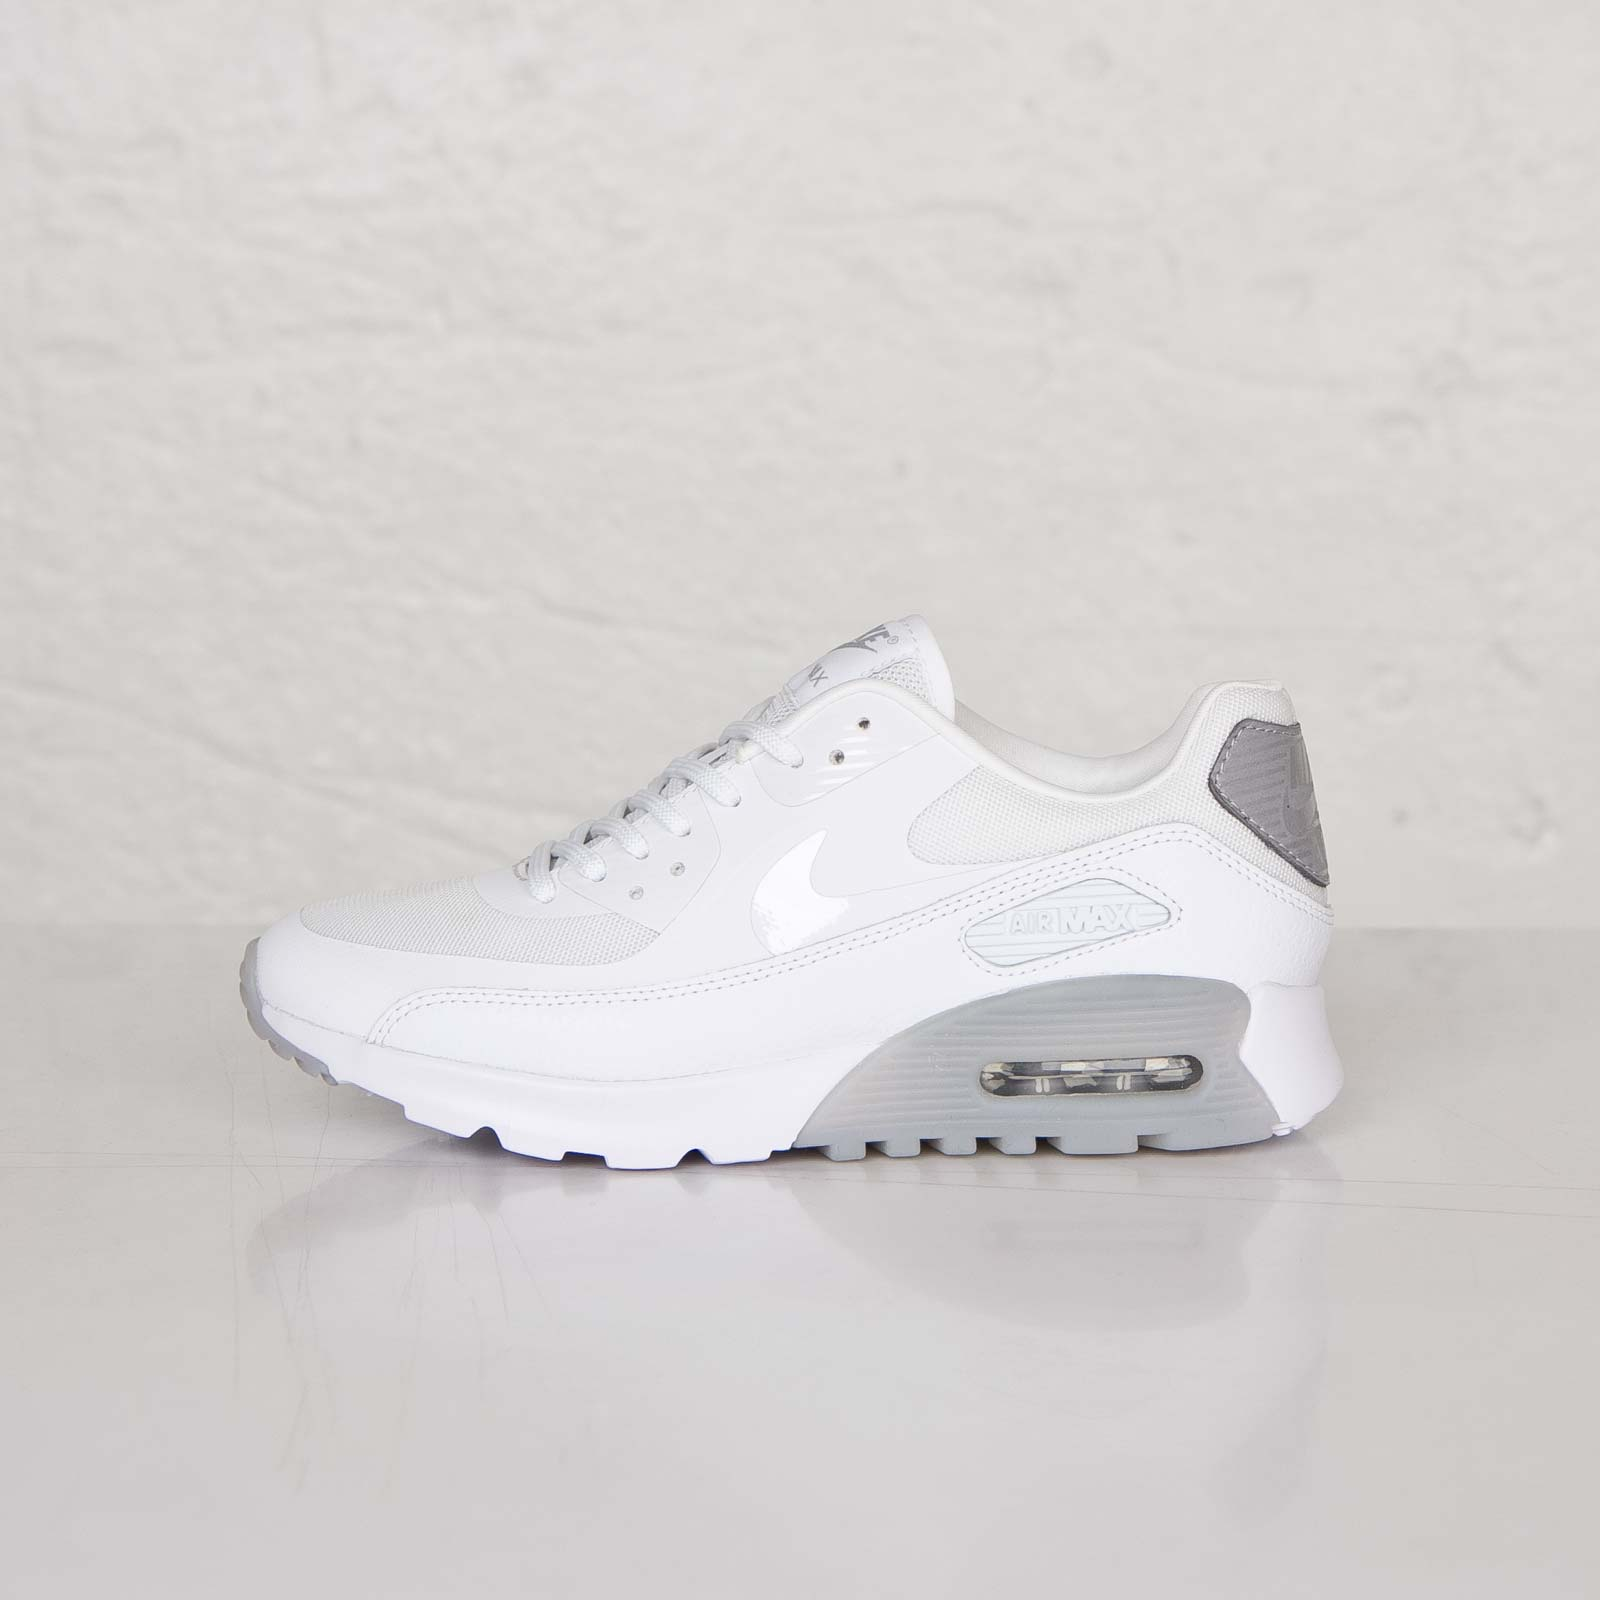 new concept 61a3a d11e9 Nike W Air Max 90 Ultra Essentials - 724981-100 - Sneakersnstuff   sneakers    streetwear online since 1999